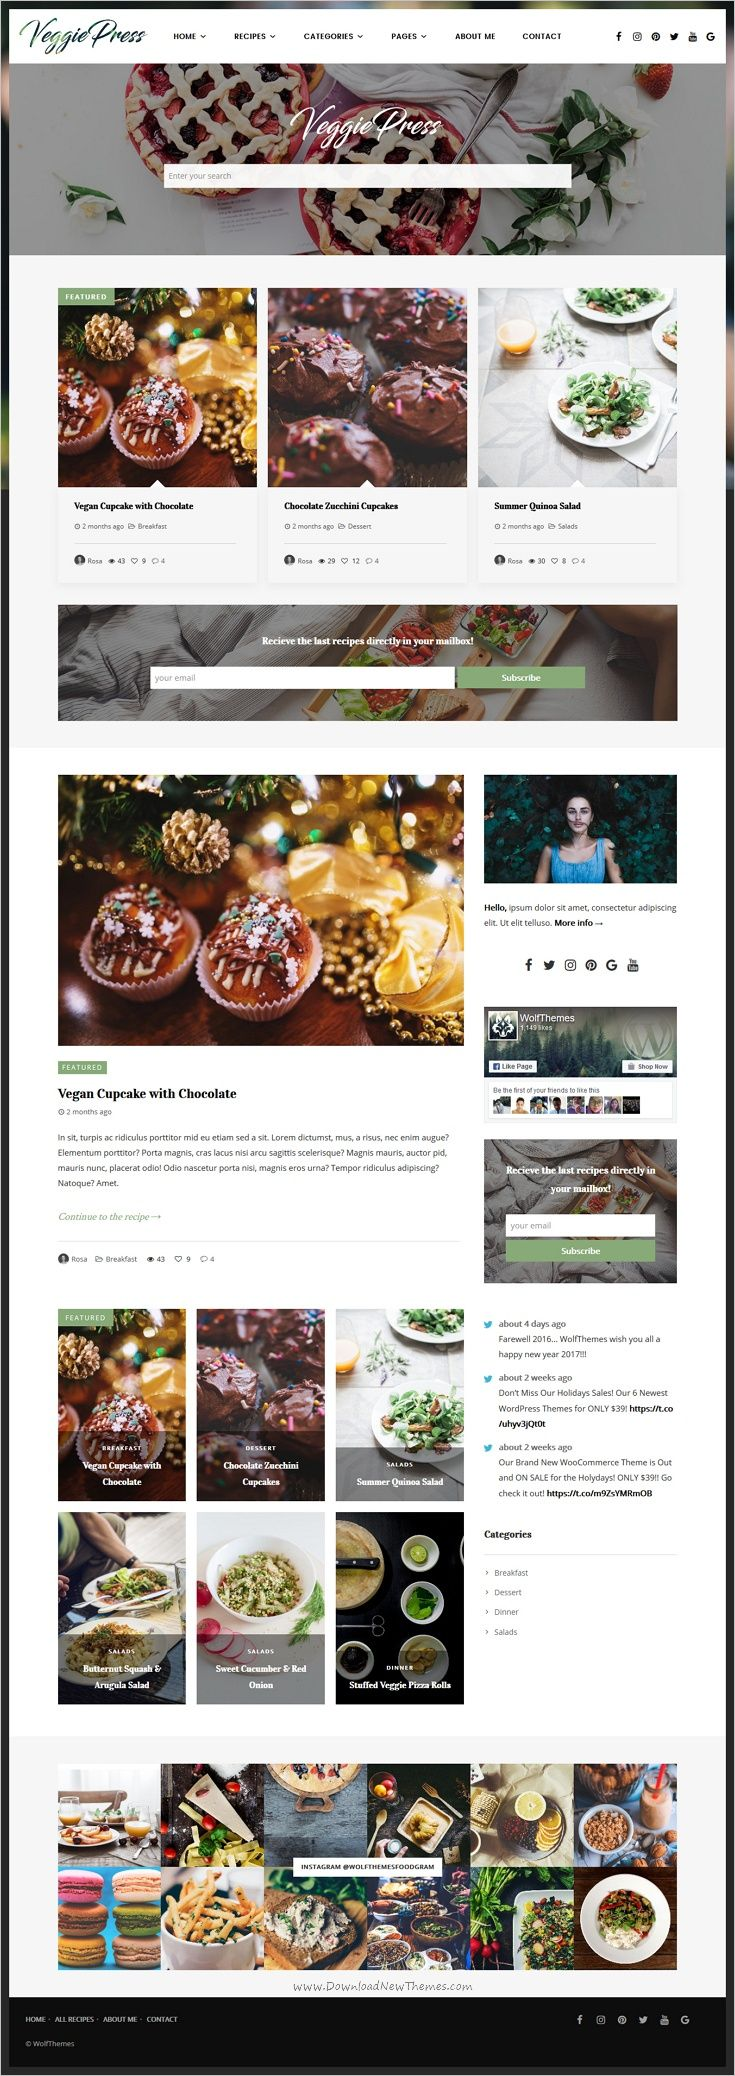 VeggiePress is an elegant responsive #WordPress Theme for #Food and #Recipe #blogs with AJAX Navigation and Rating System download now➩ https://themeforest.net/item/veggiepress-food-recipe-wordpress-theme-with-ajax-navigation-and-rating-system/18774143?ref=Datasata